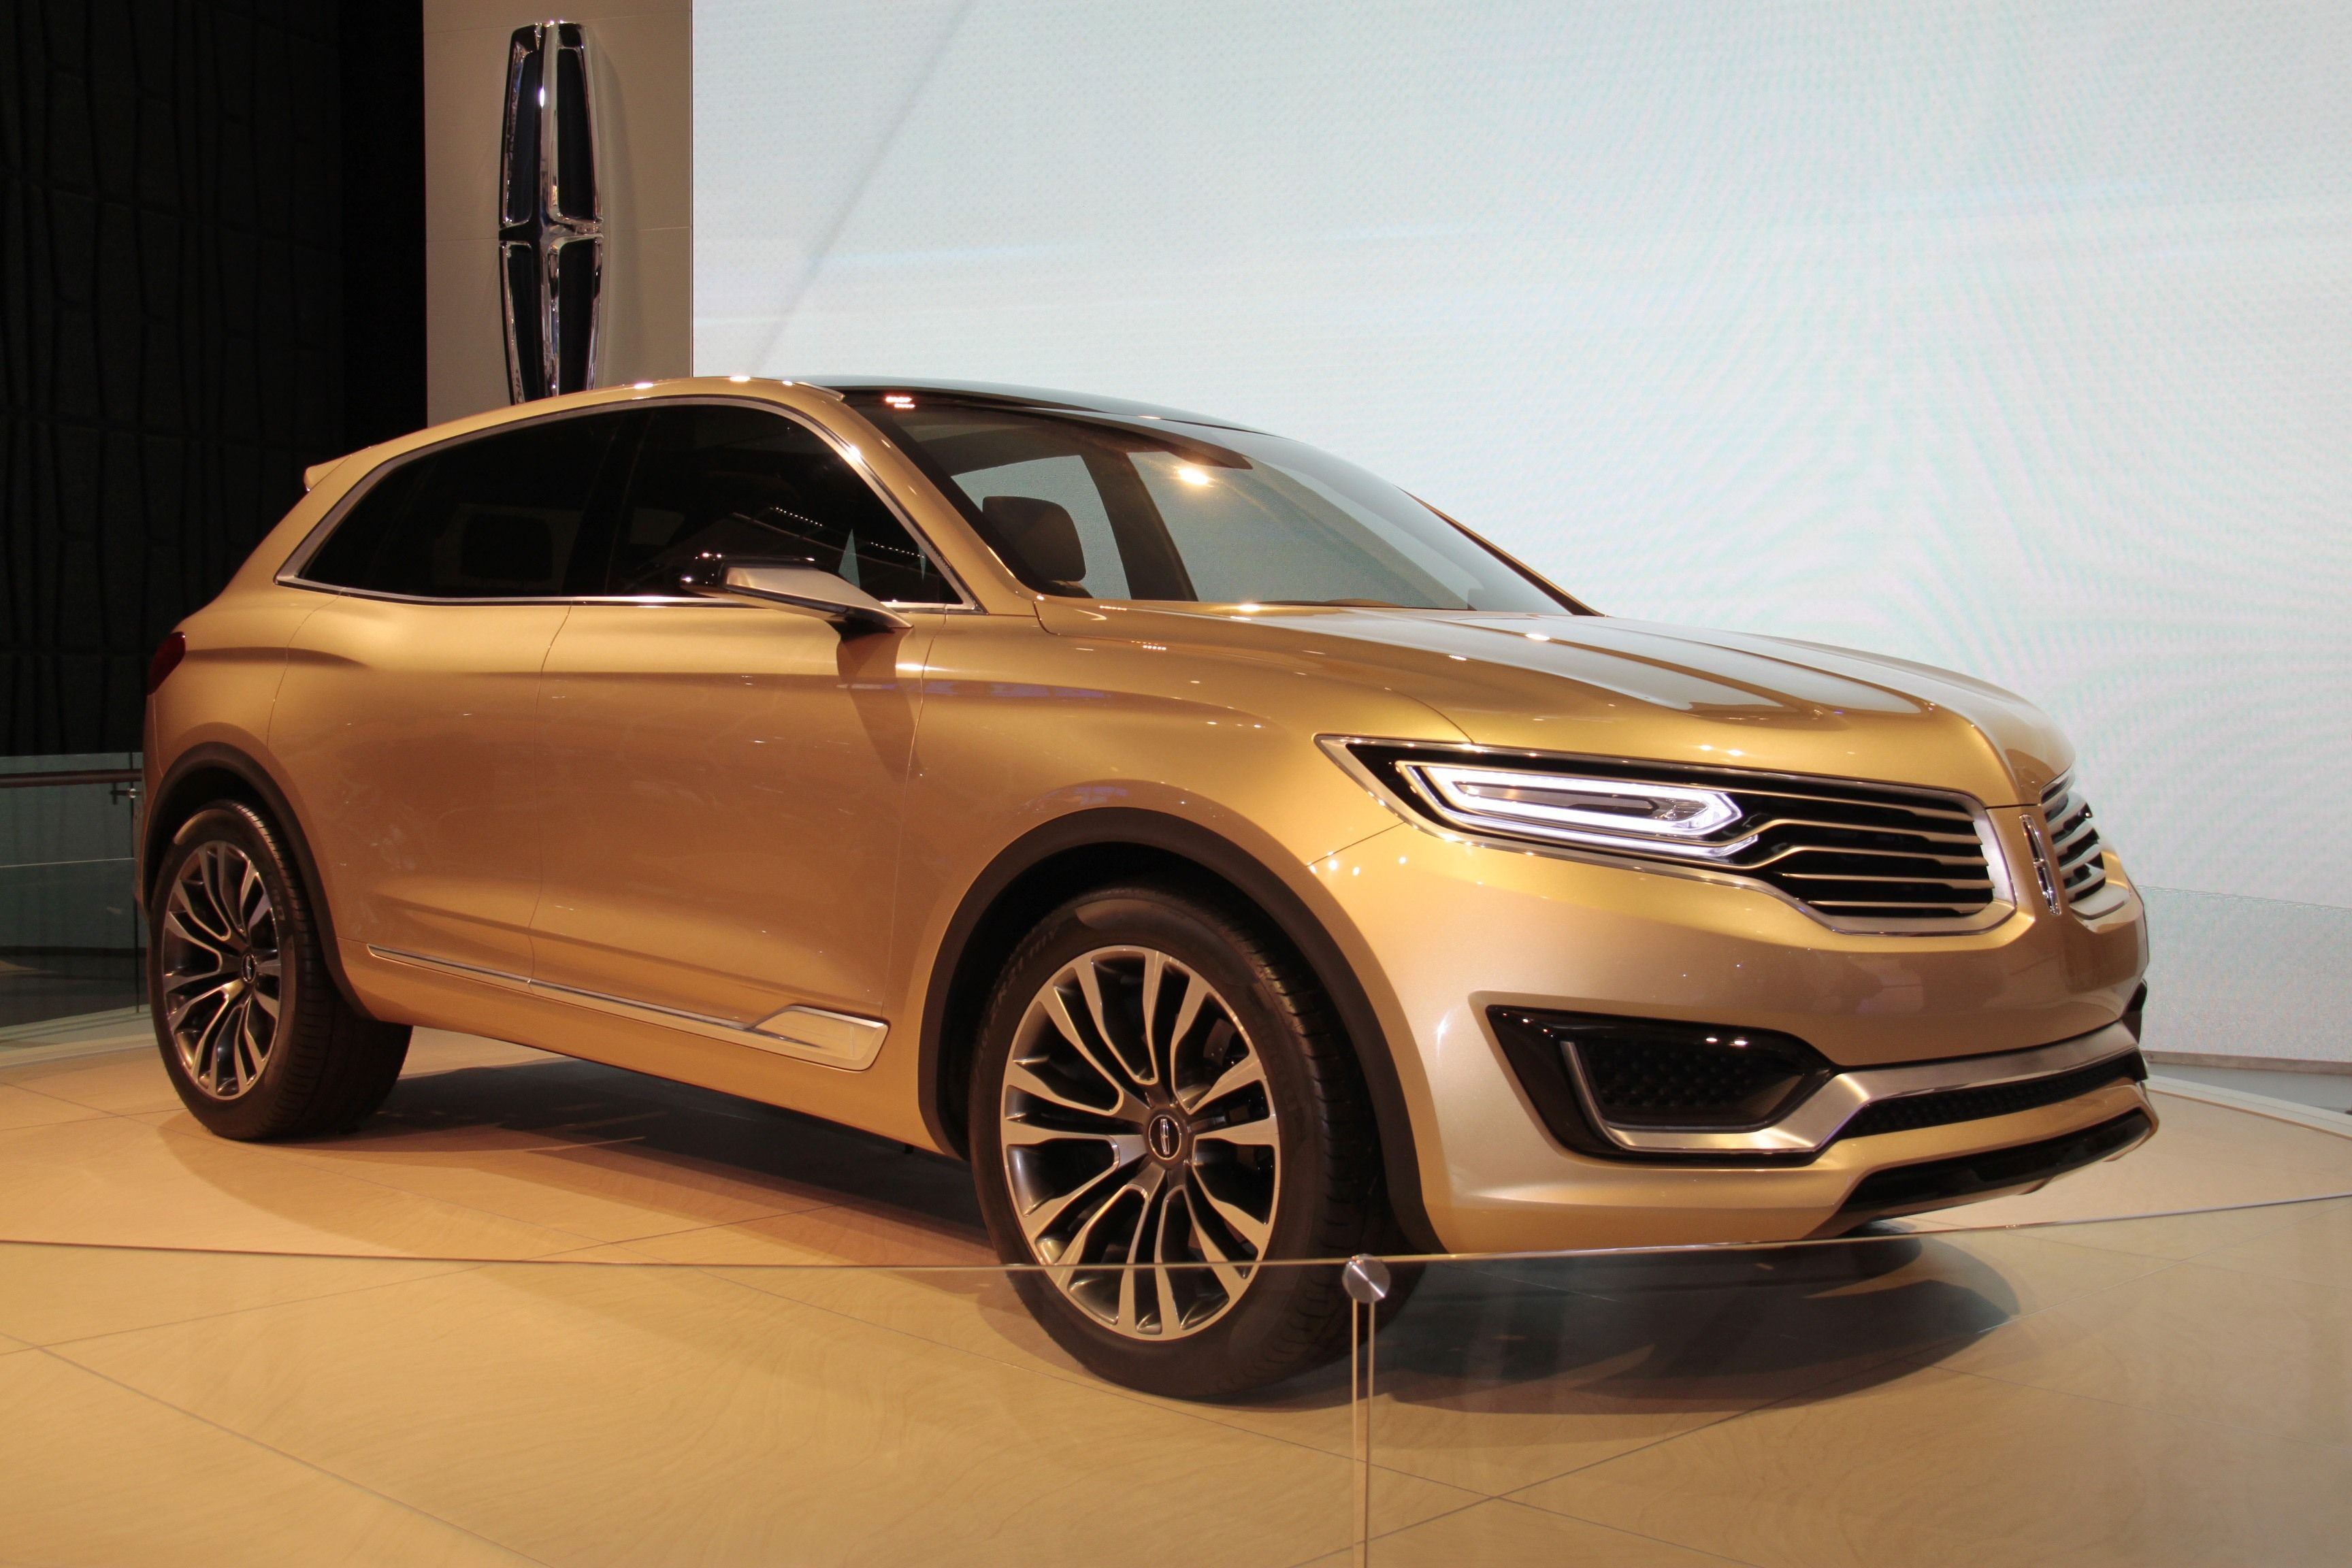 2019 Lincoln Mkx At Beijing Motor Show | Car Gallery